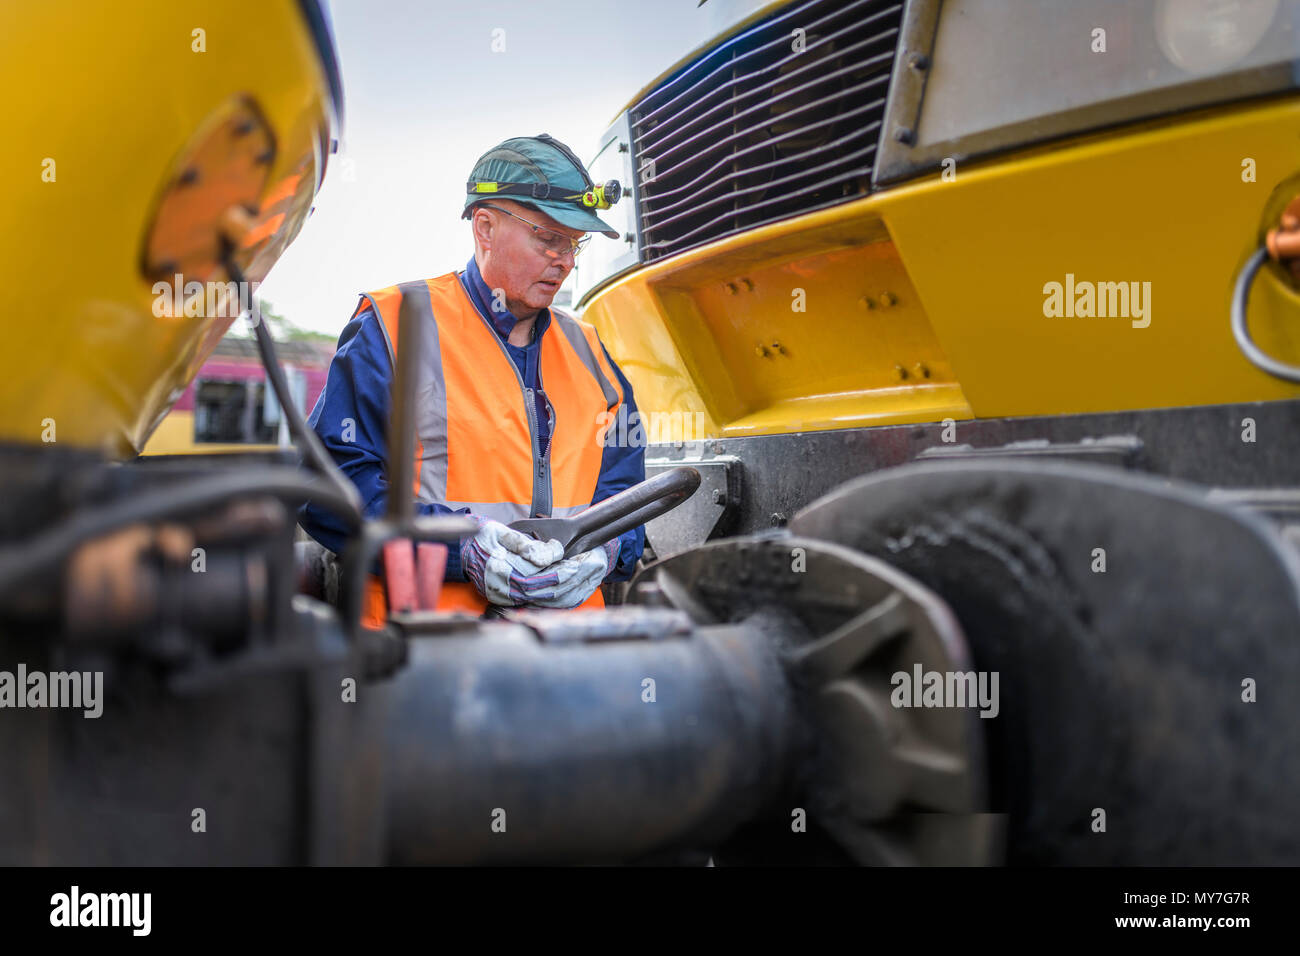 Engineer hitching one locomotive to another in train engineering factory - Stock Image